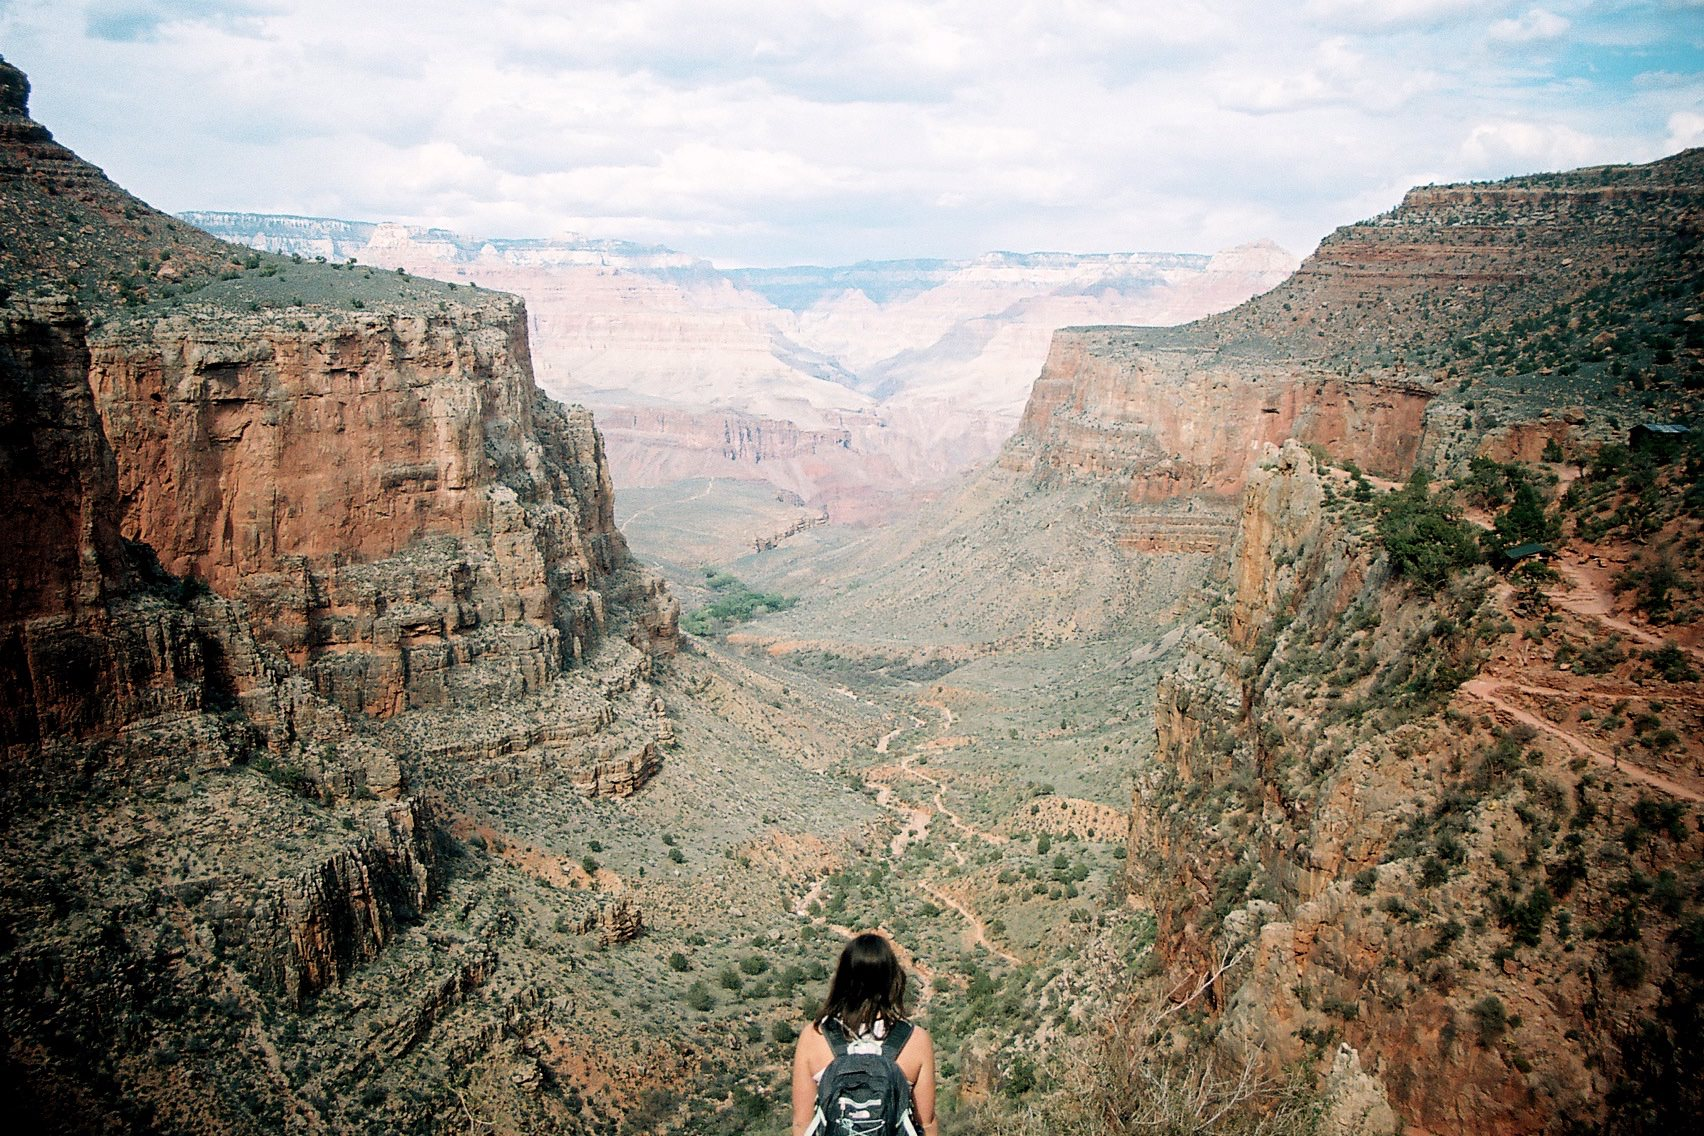 35mm-film-Arizona-lifestyle-Grand-Canyon-3.jpg